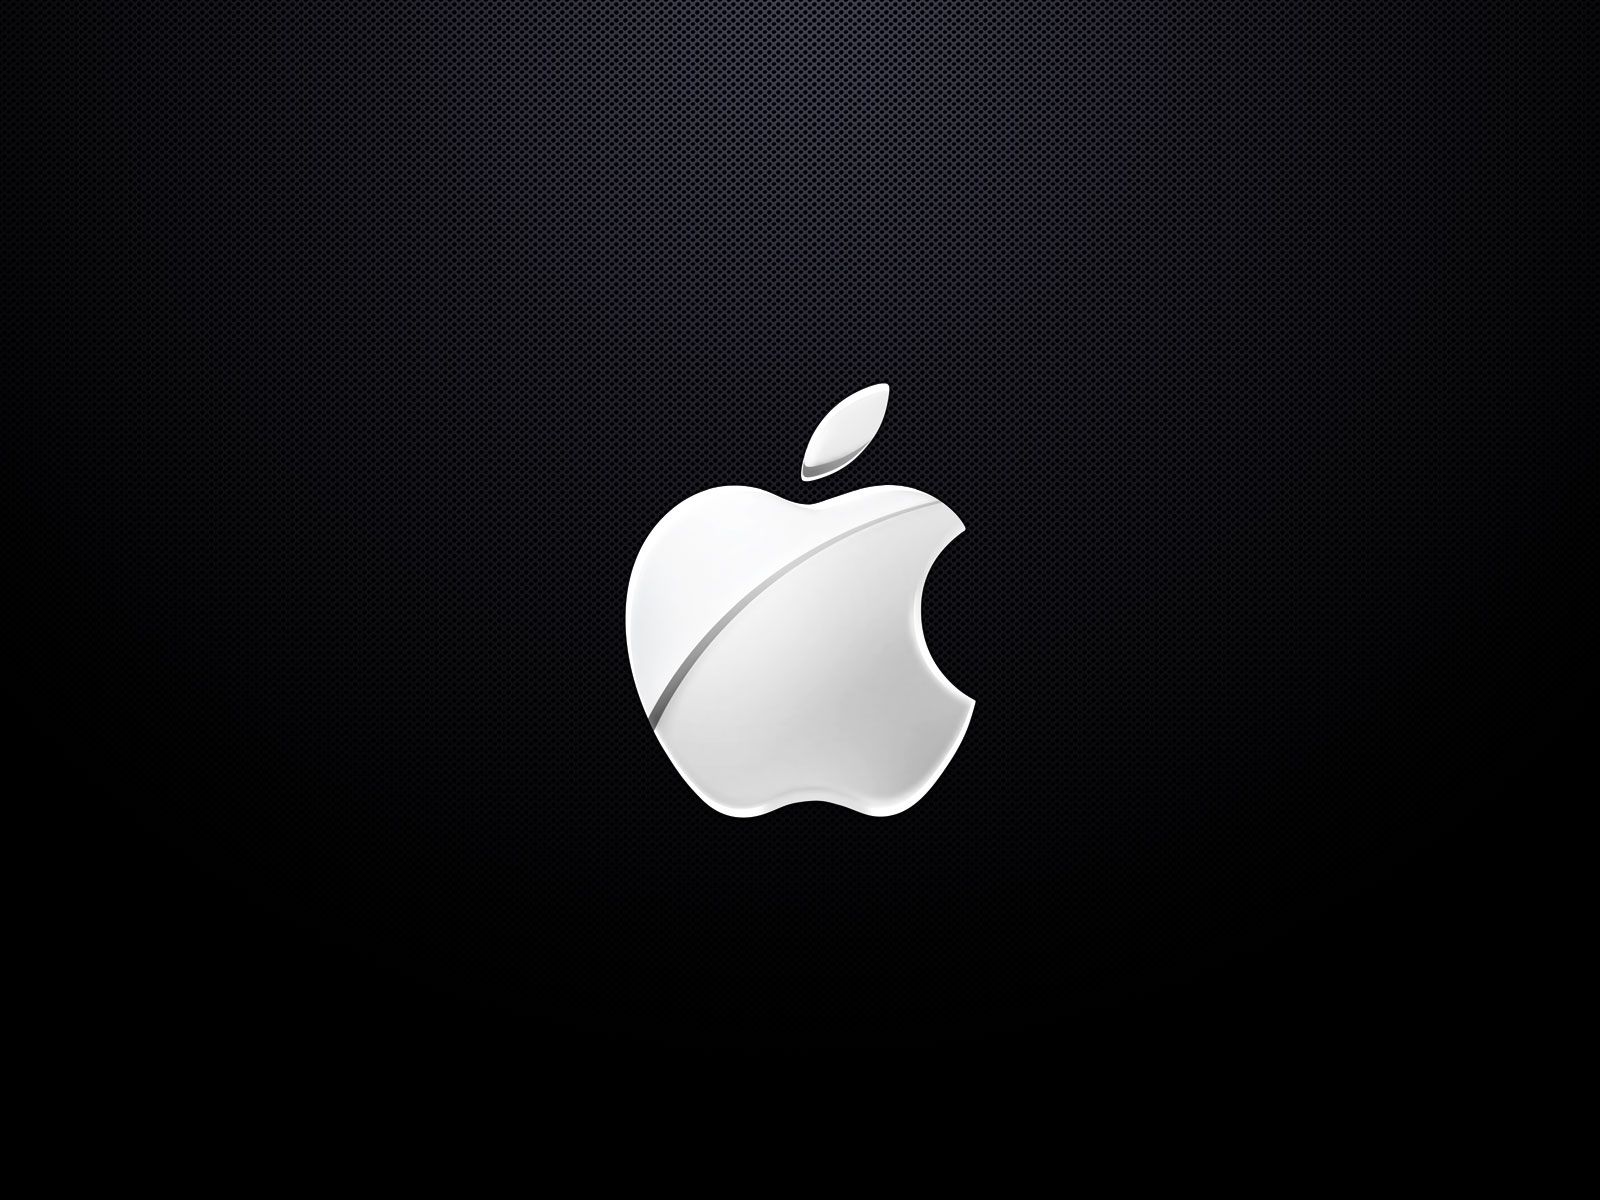 Apple logo logos pictures for Immagini apple hd